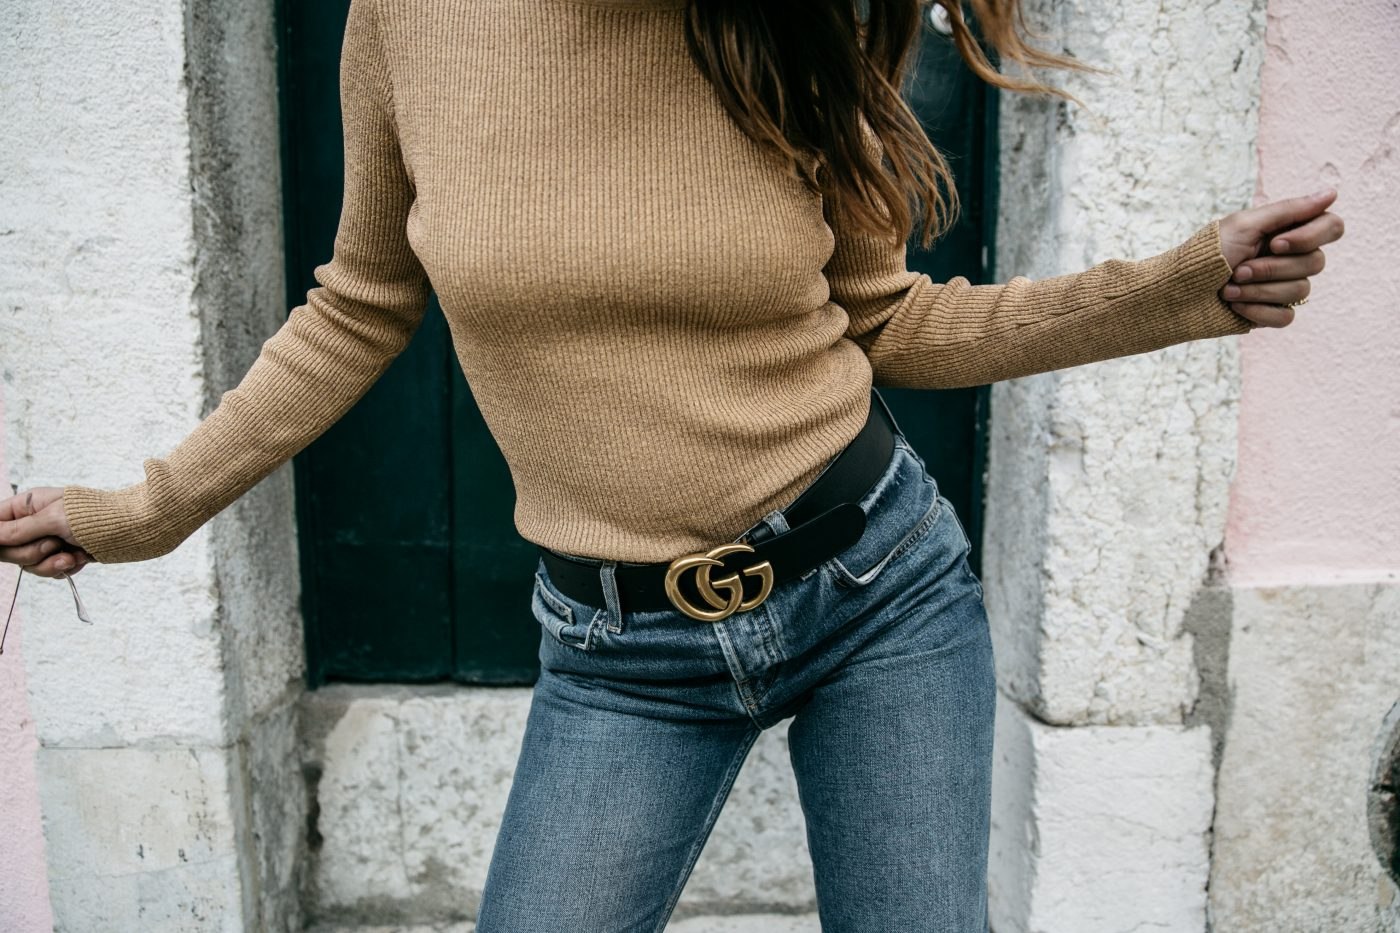 Metallic_Sweater-Cameo_The_Label-Melie-Lisboa-Denim-Topshop-Gucci_Belt-Saint_Laurent_Sneakers-Outfit-Street_Style-66-1400x933